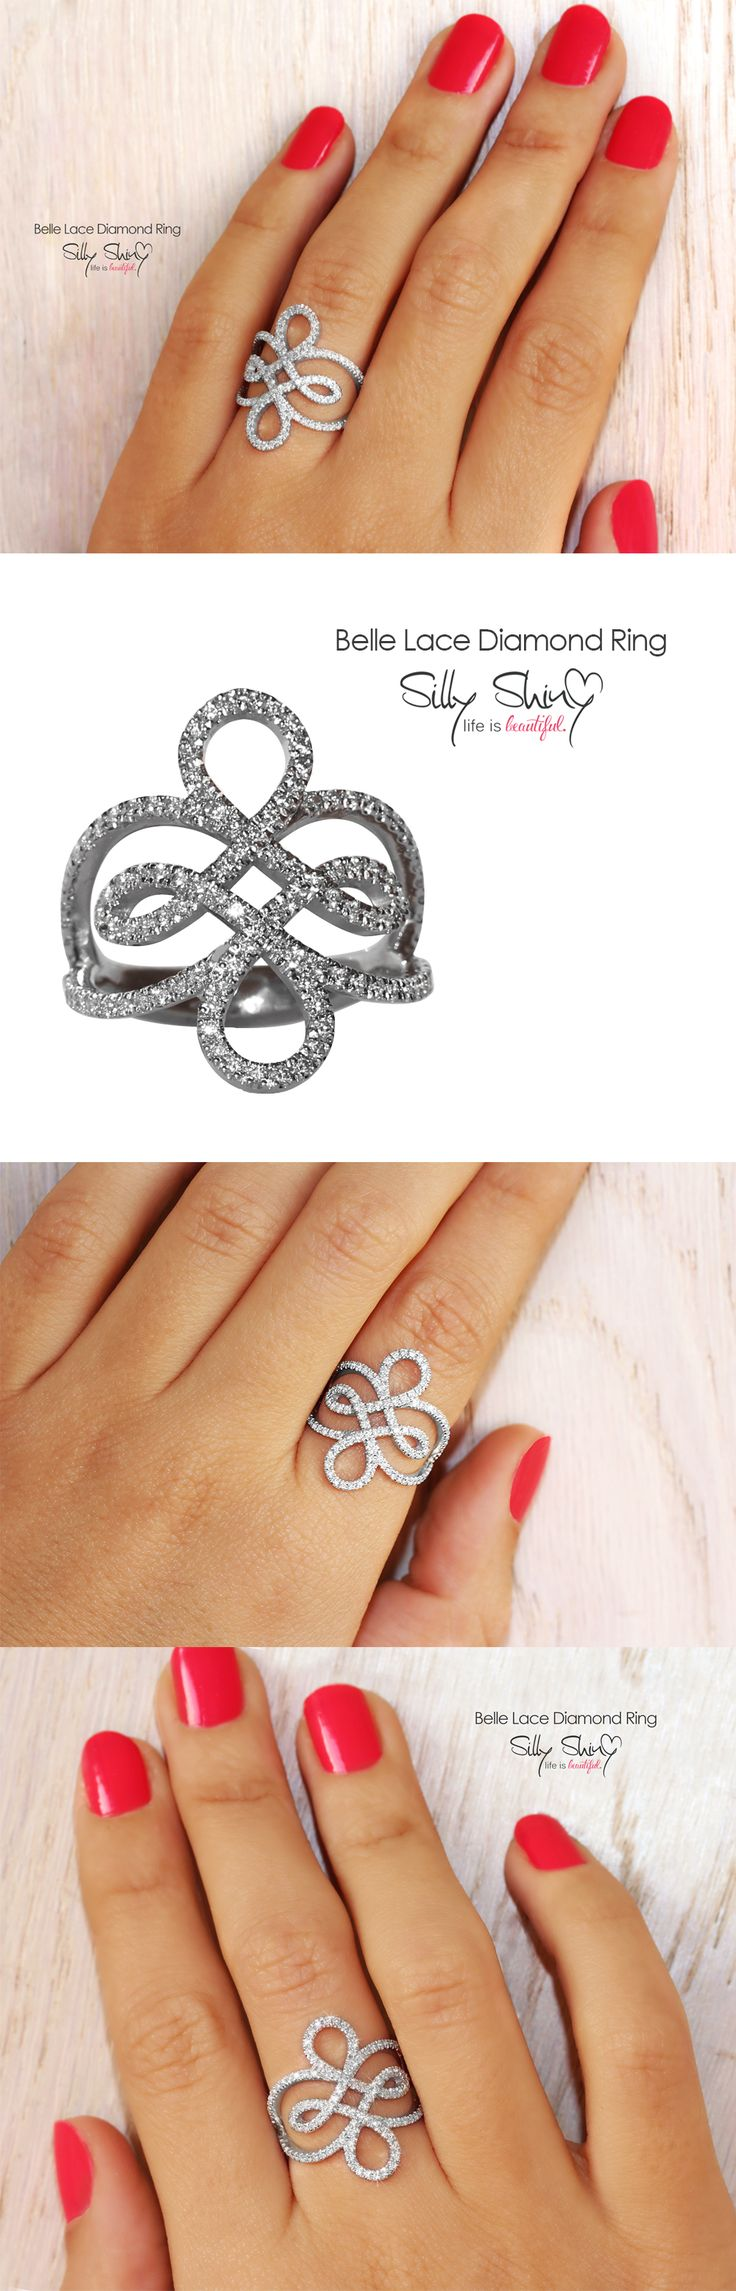 ♥ Princess Belle Lace Diamond Ring handmade from 14k white gold in pictures, into this lace ring I have interlaced a few very flowing beautiful shapes, also there are 2 hearts you can find from the side view of the ring. This lace ring width is very flattering for the finger. This ring is feminine with delicate lines, throws a lot of sparkle all around, has luxurious high fashion look